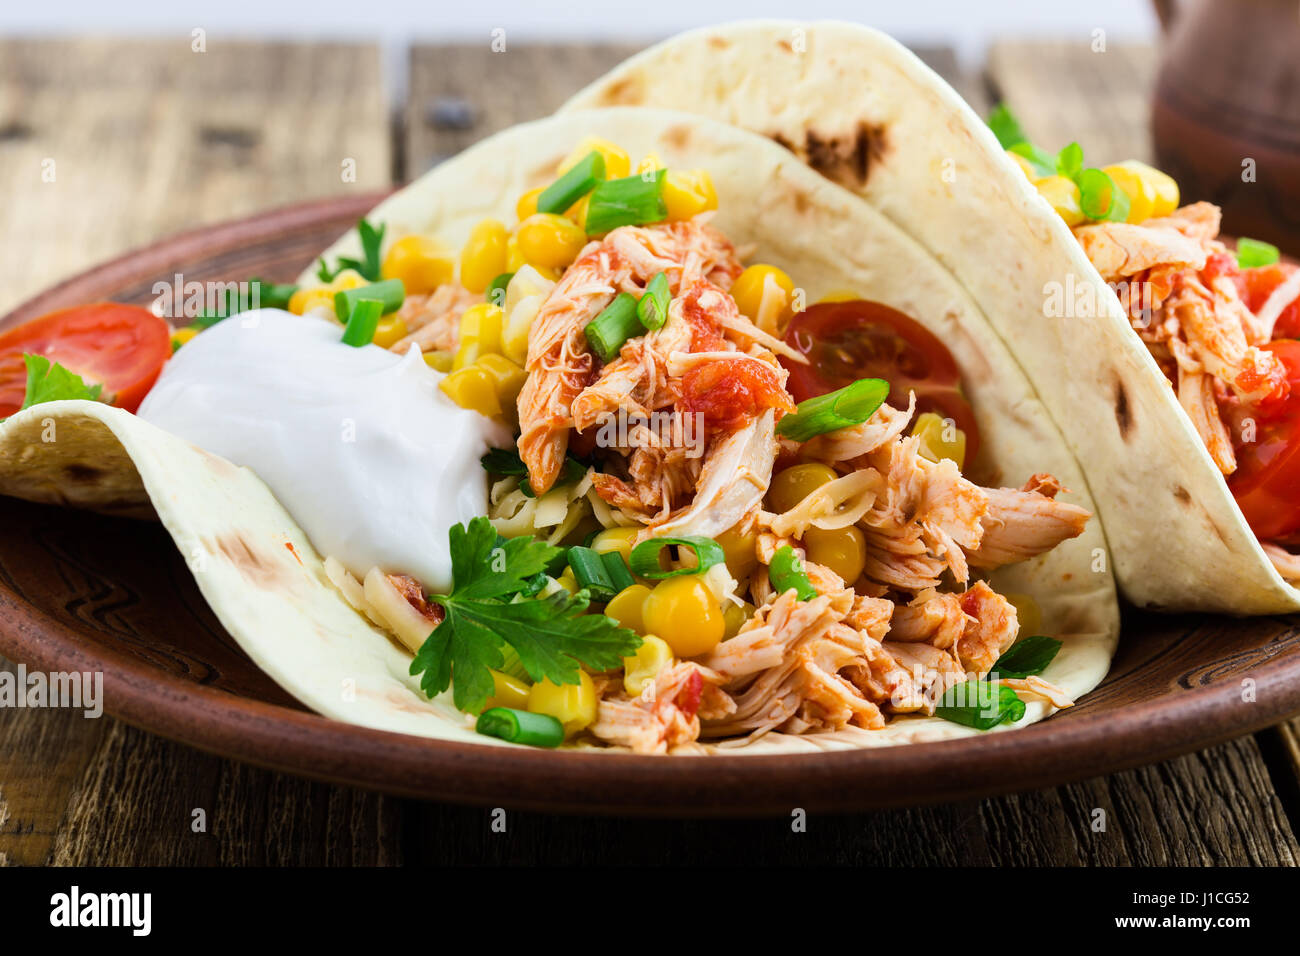 Homemade slow cooker chicken taco with corn served on rustic ceramic plate on wooden table, mexican style - Stock Image